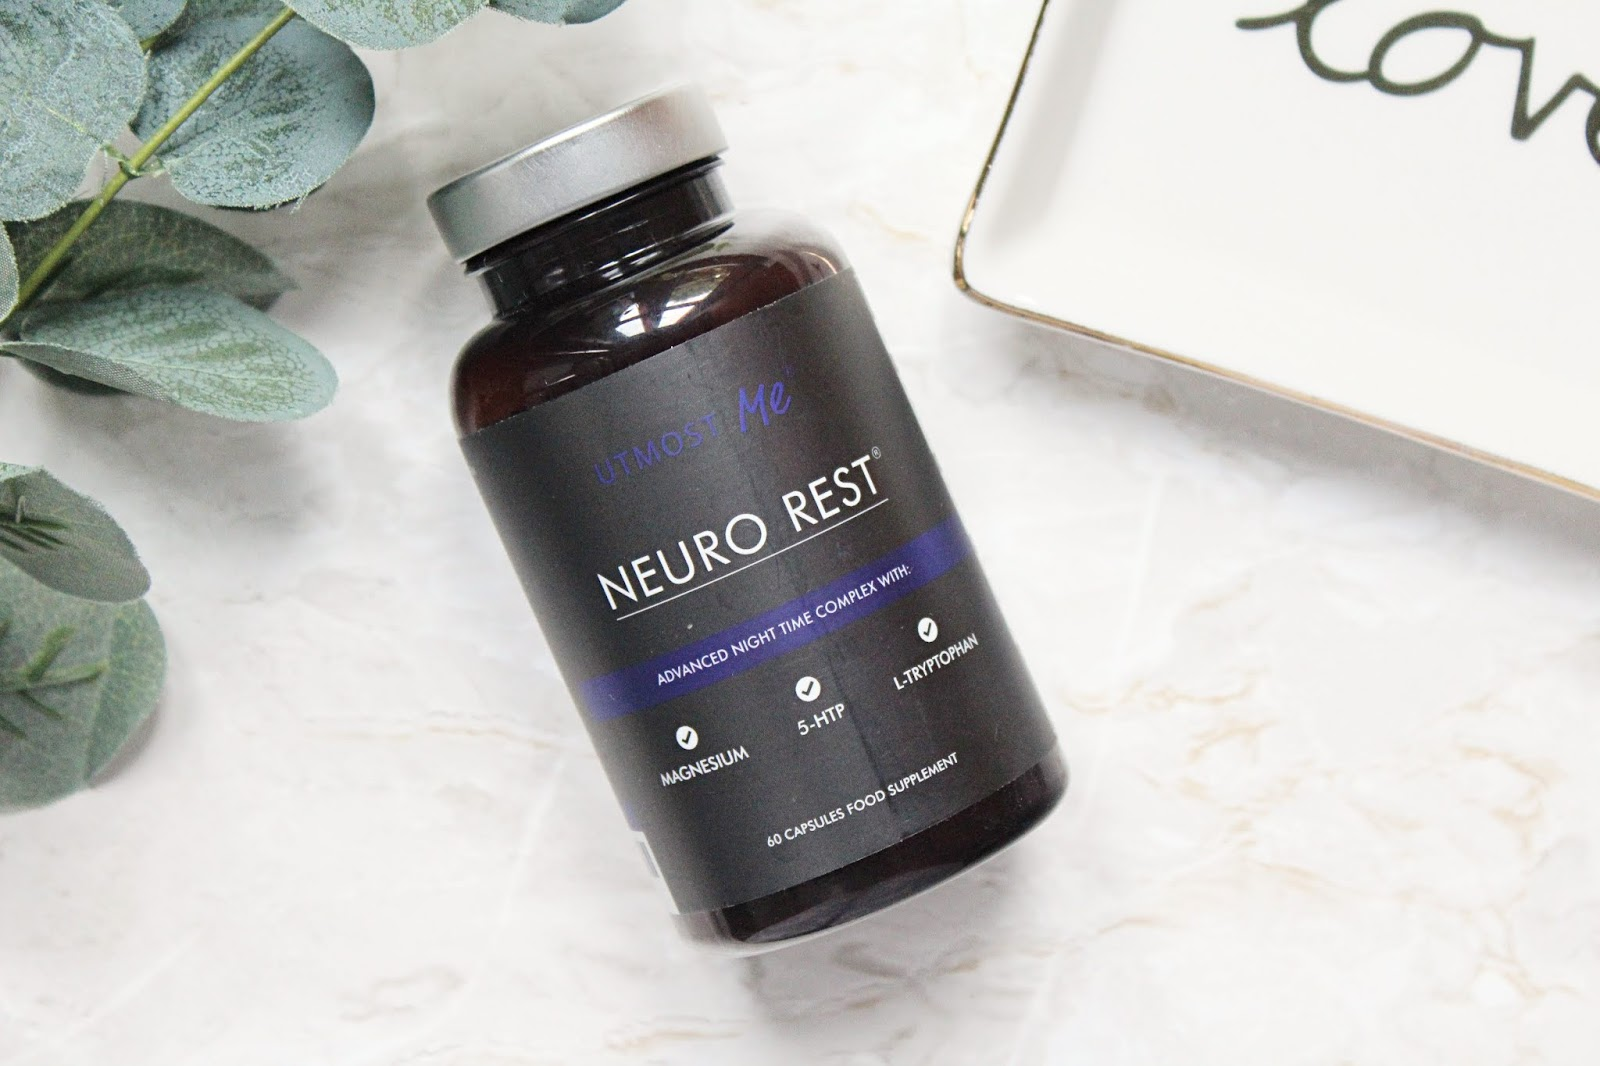 Utmost Me Neuro Rest - Natural Sleep Aid & Anxiety Relief